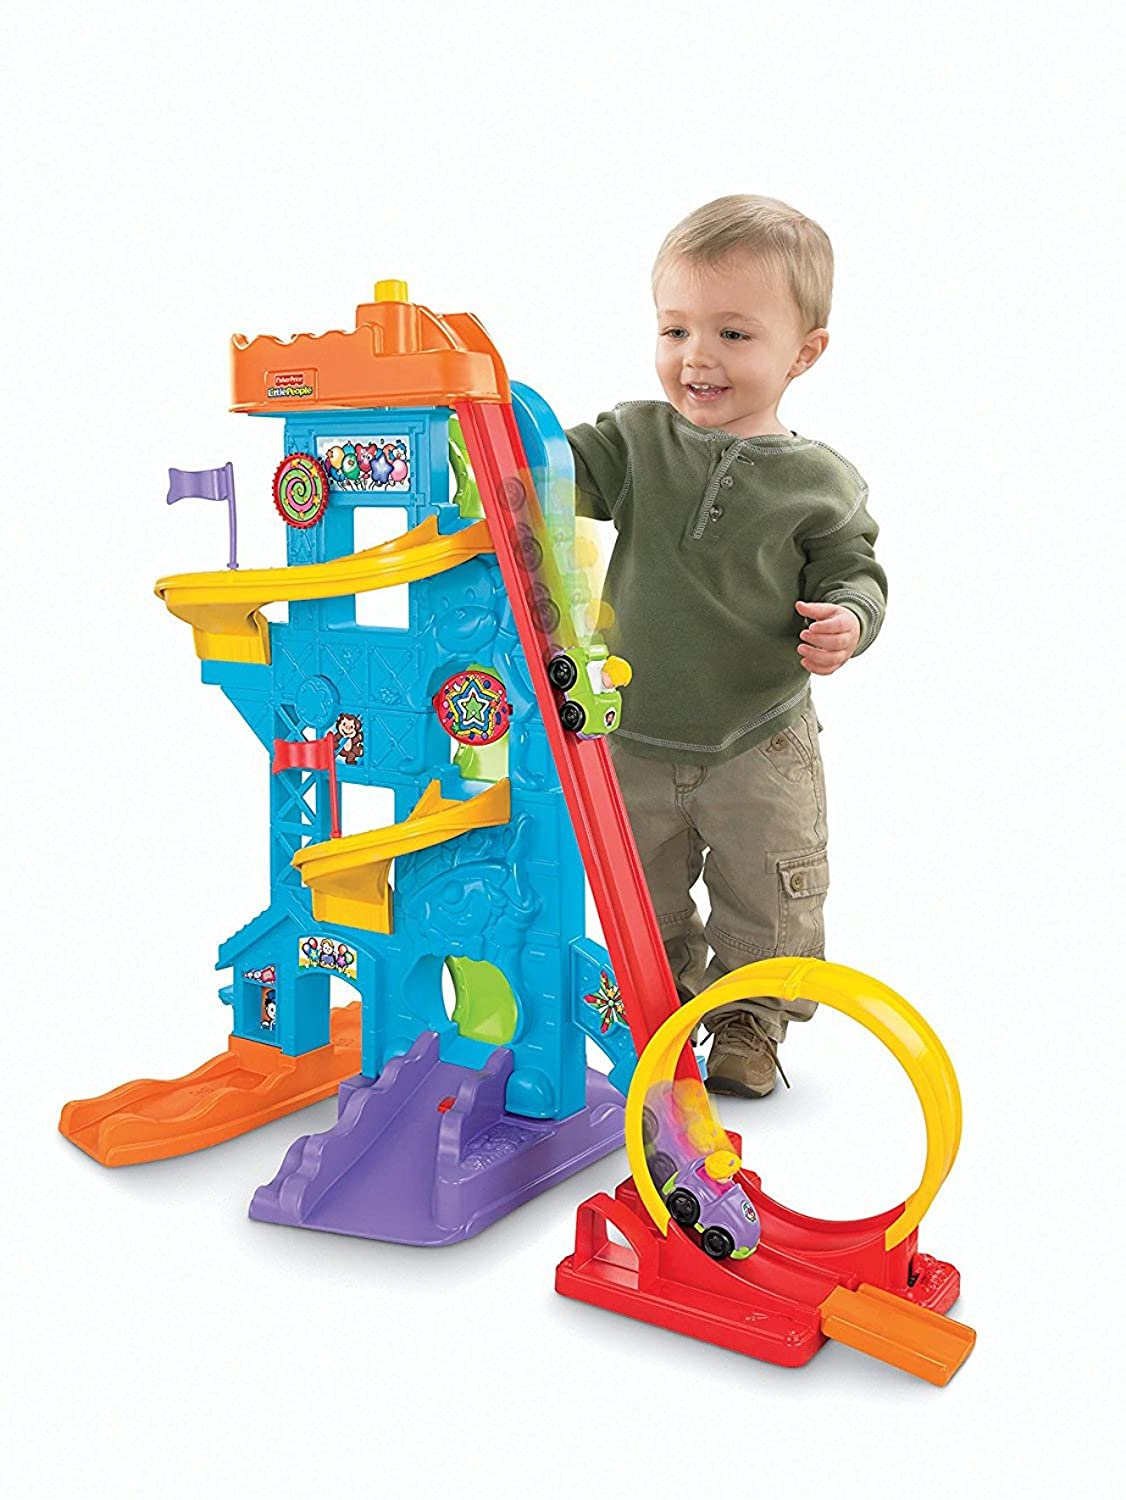 Fun Toys For Christmas : Best gifts for year old boys in itsy bitsy fun